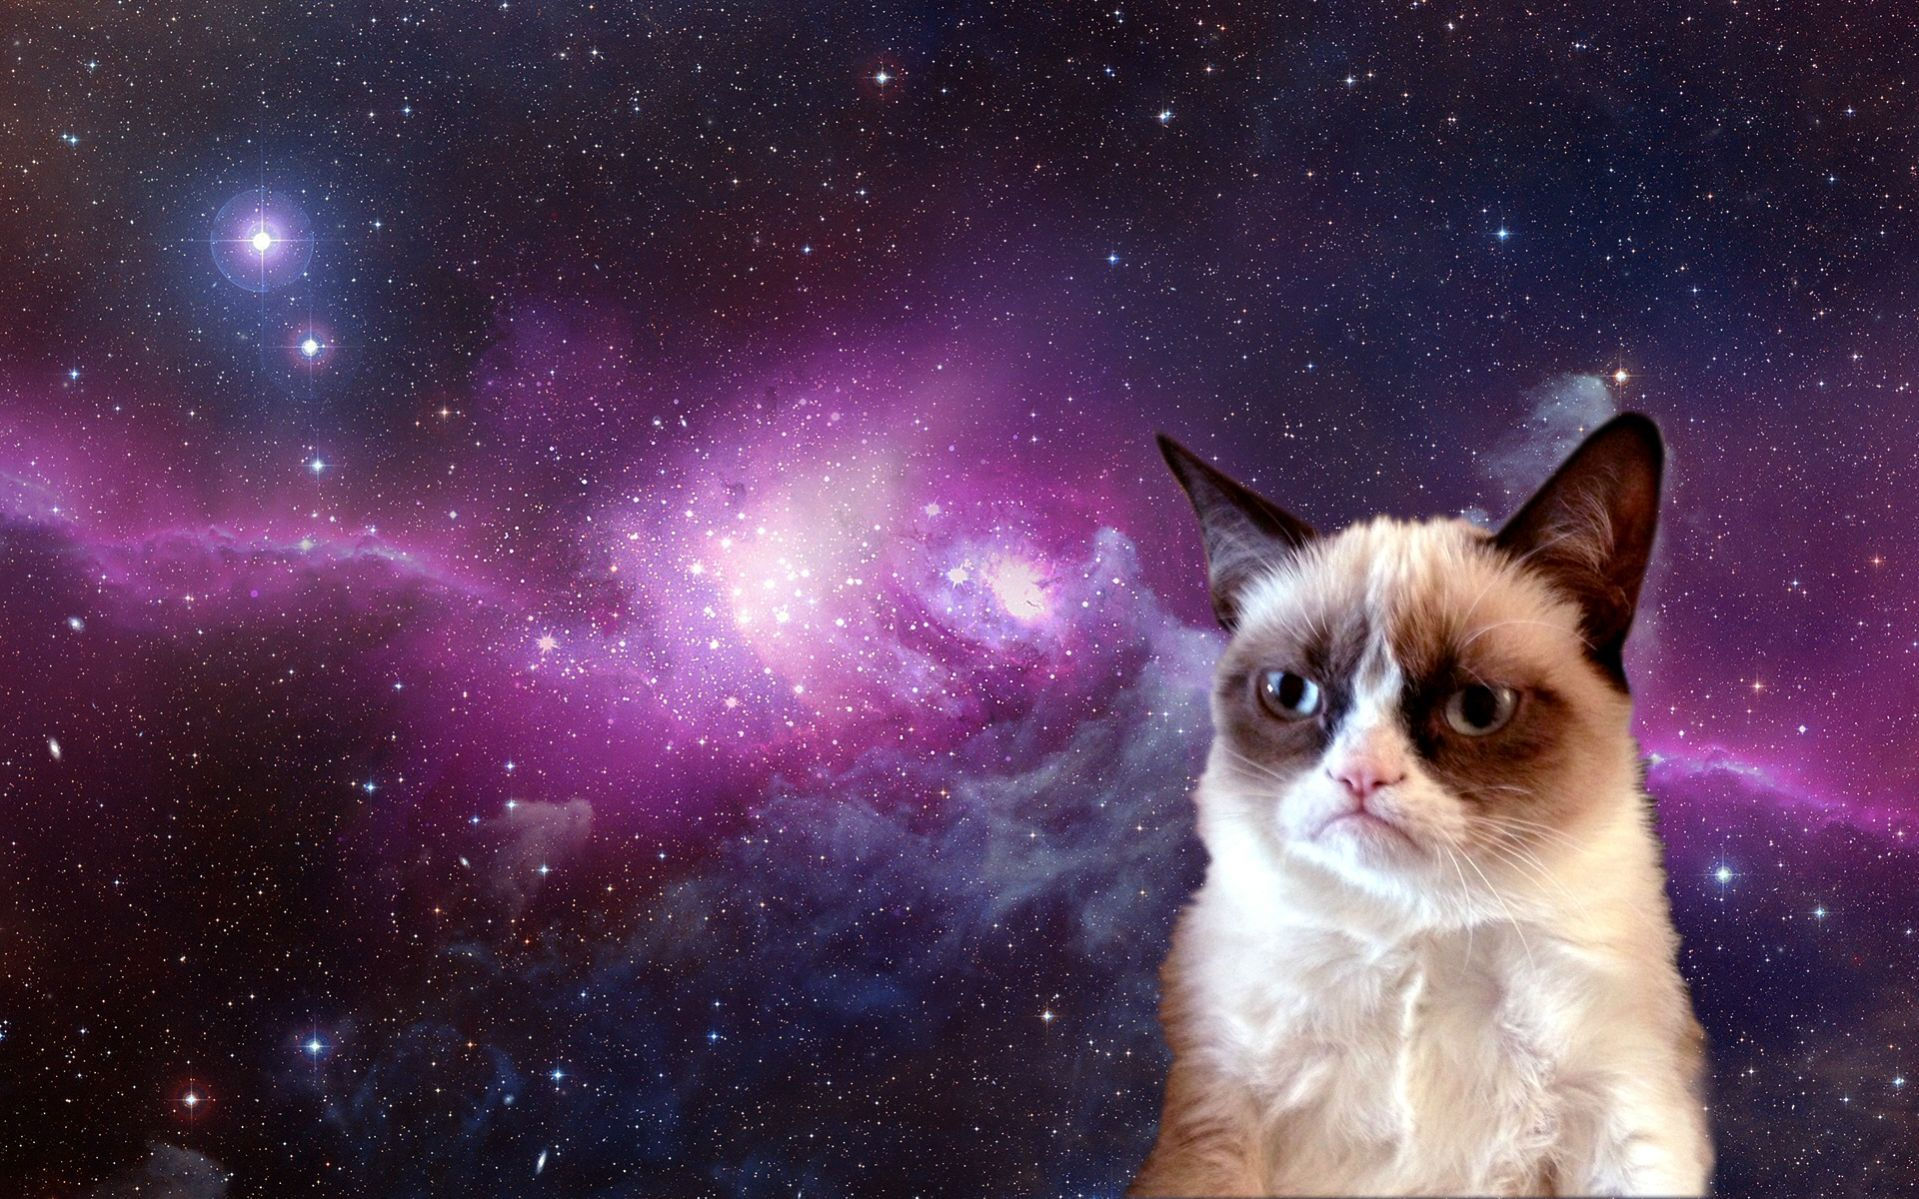 Grumpy Cat Wallpaper